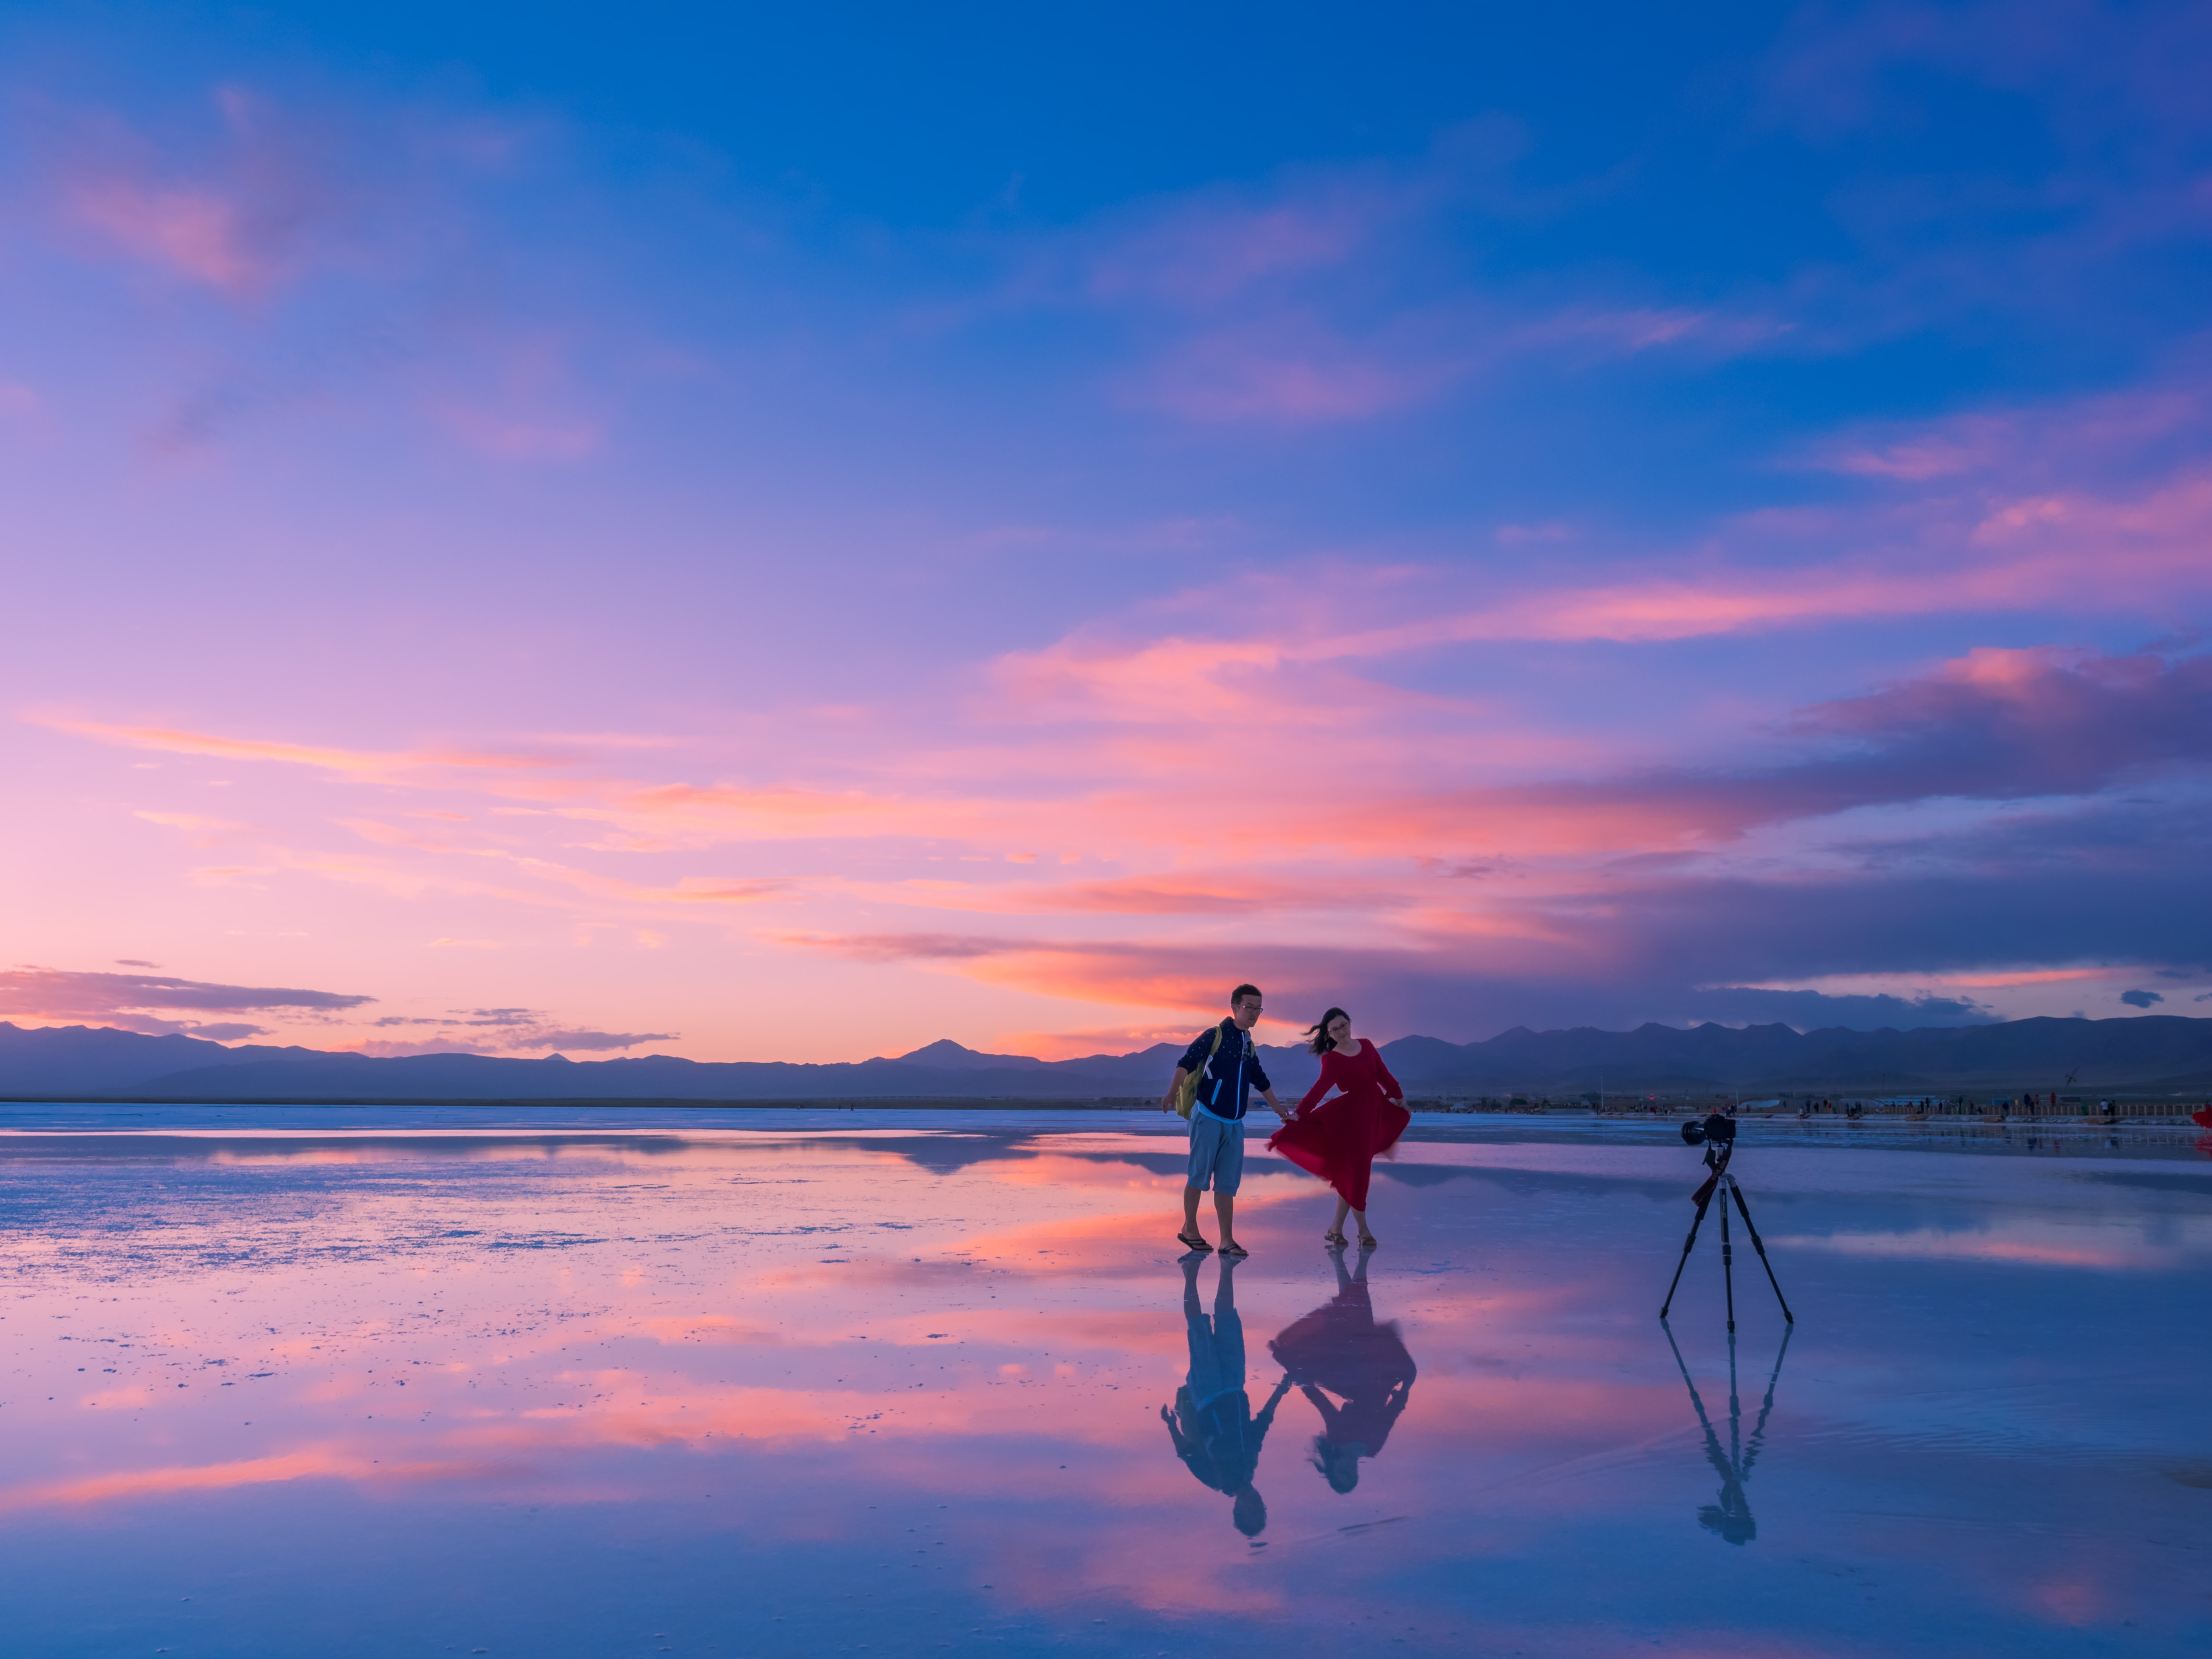 View of the couple posing in front of the camera on a tripod on a sand beach after sunset